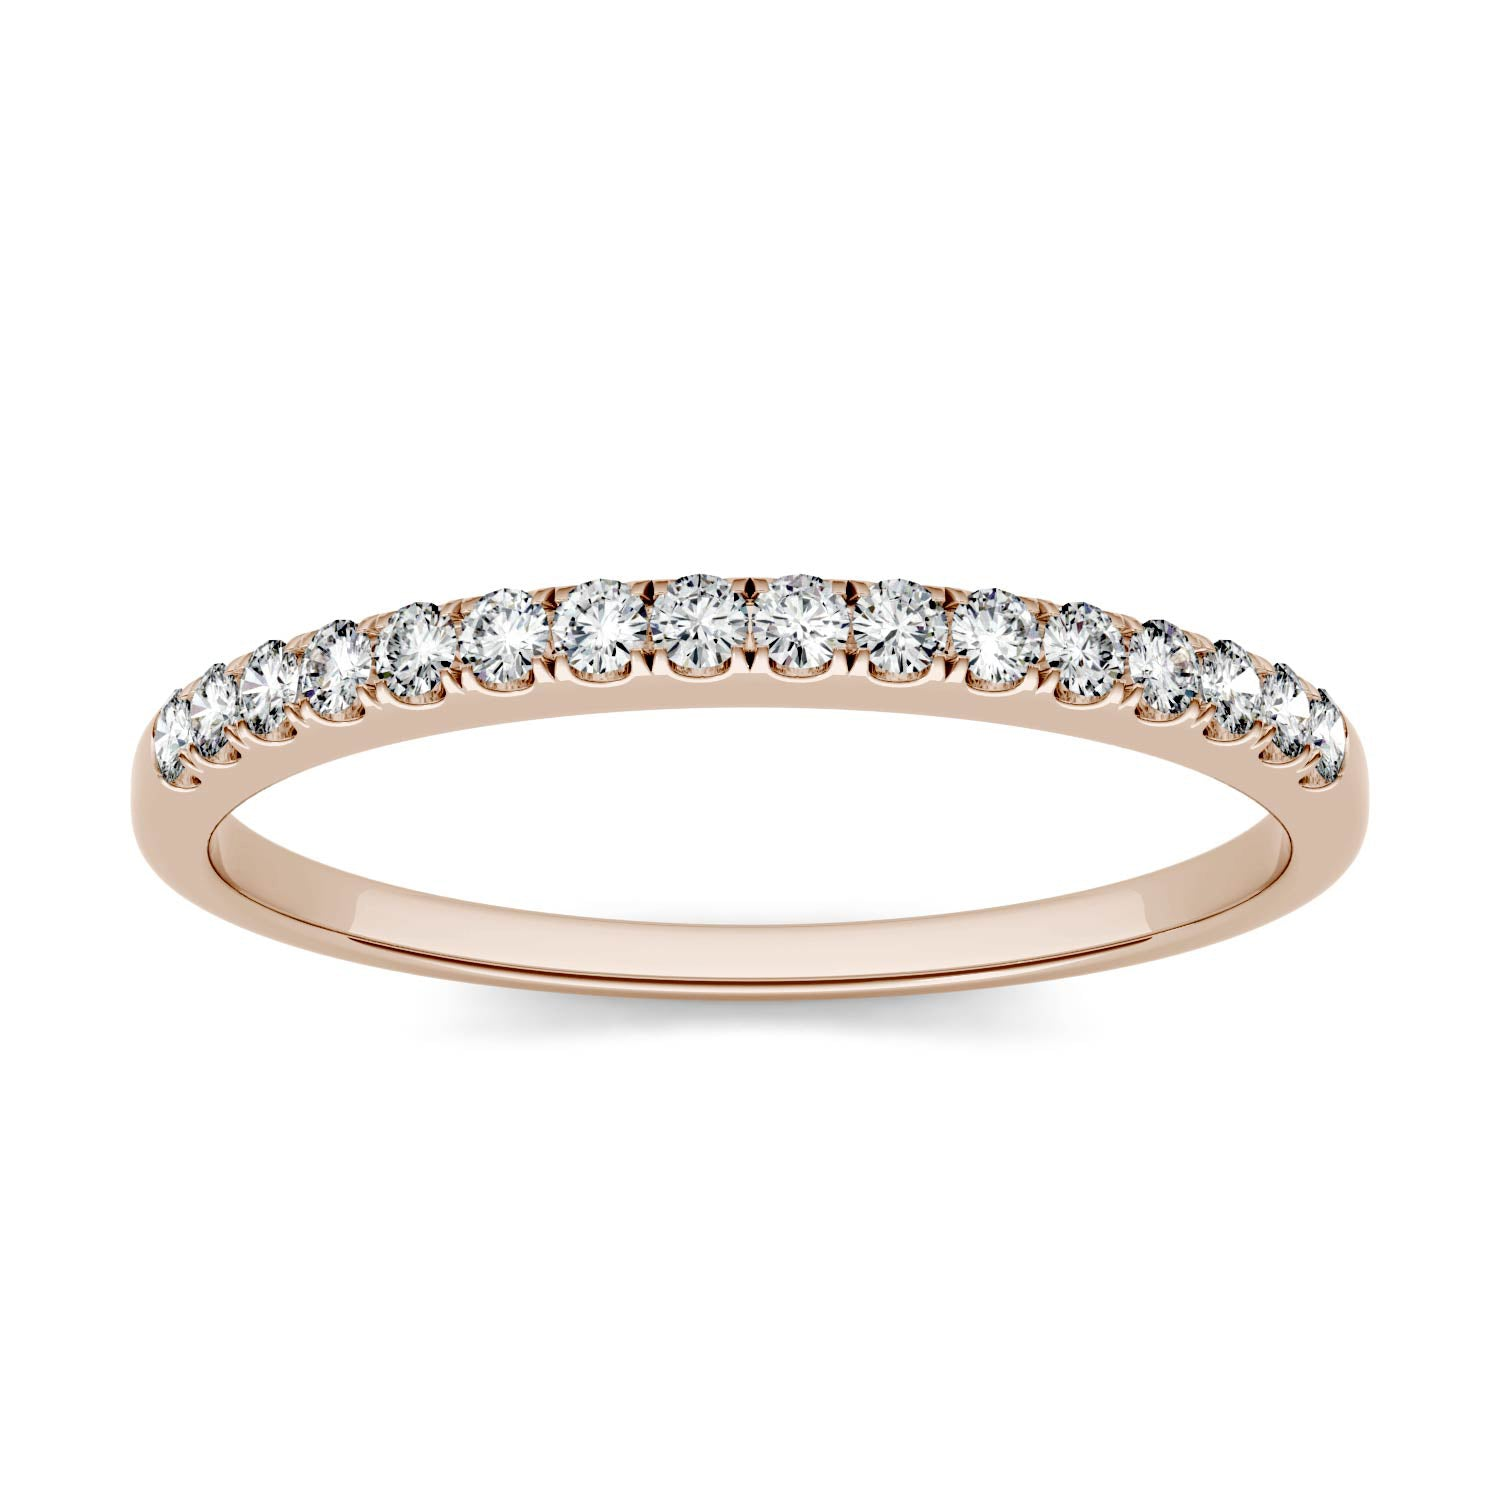 Charles & Colvard Moissanite Women's Half Eternity Wedding Band in Rose Gold-529470 - Jewelry by Johan